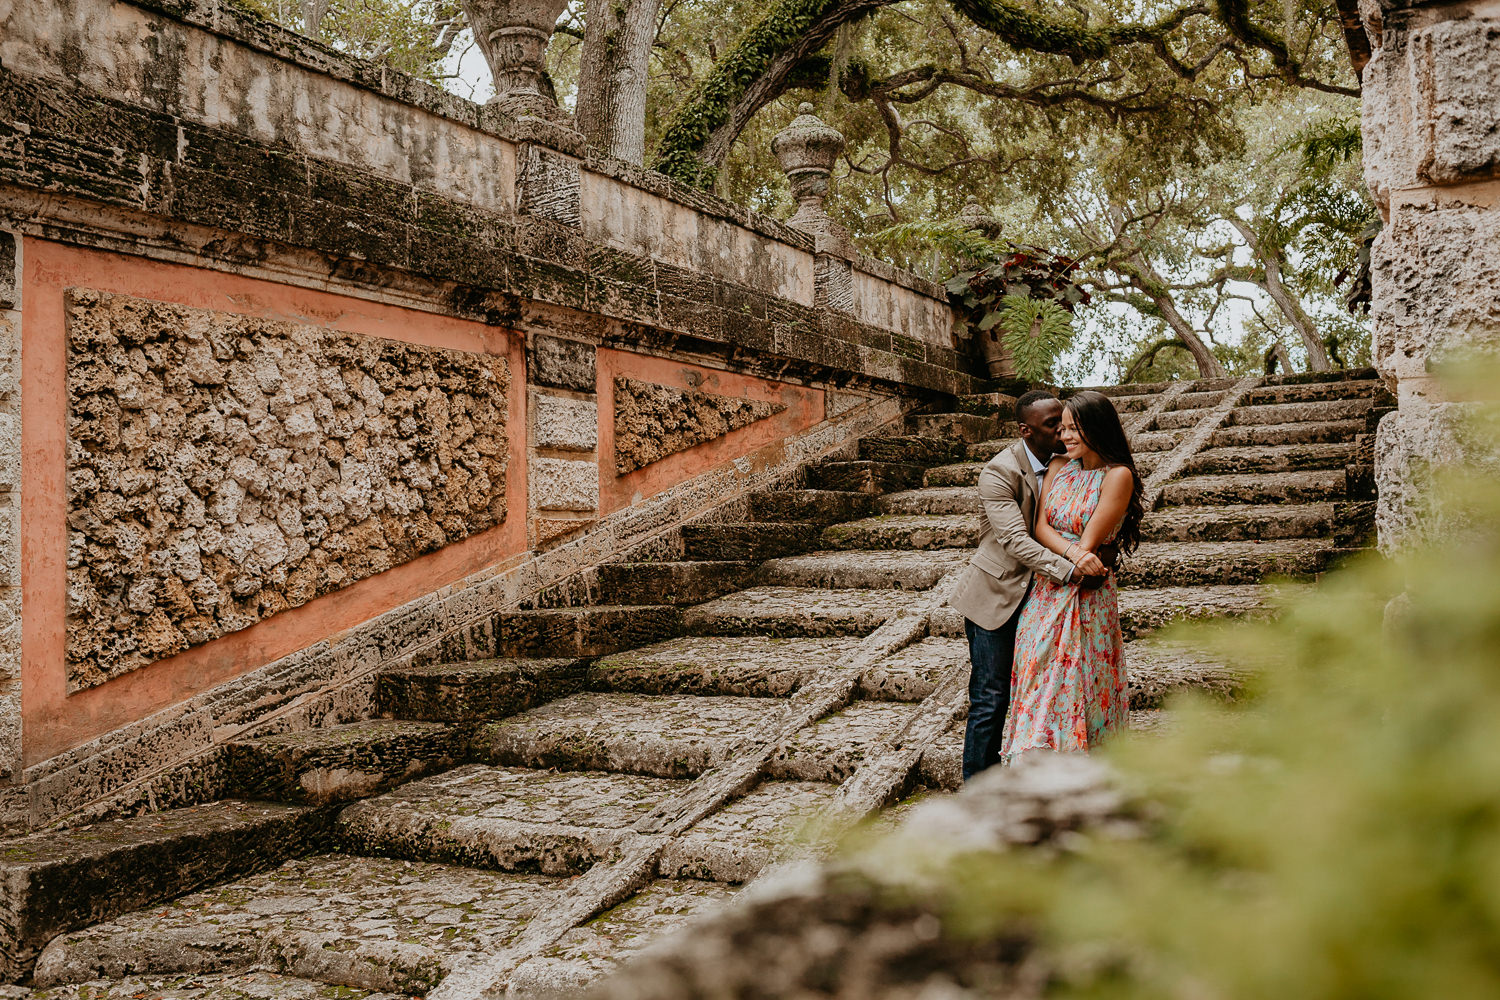 guy kissing girl on her cheek on stone stairs with oak trees in background